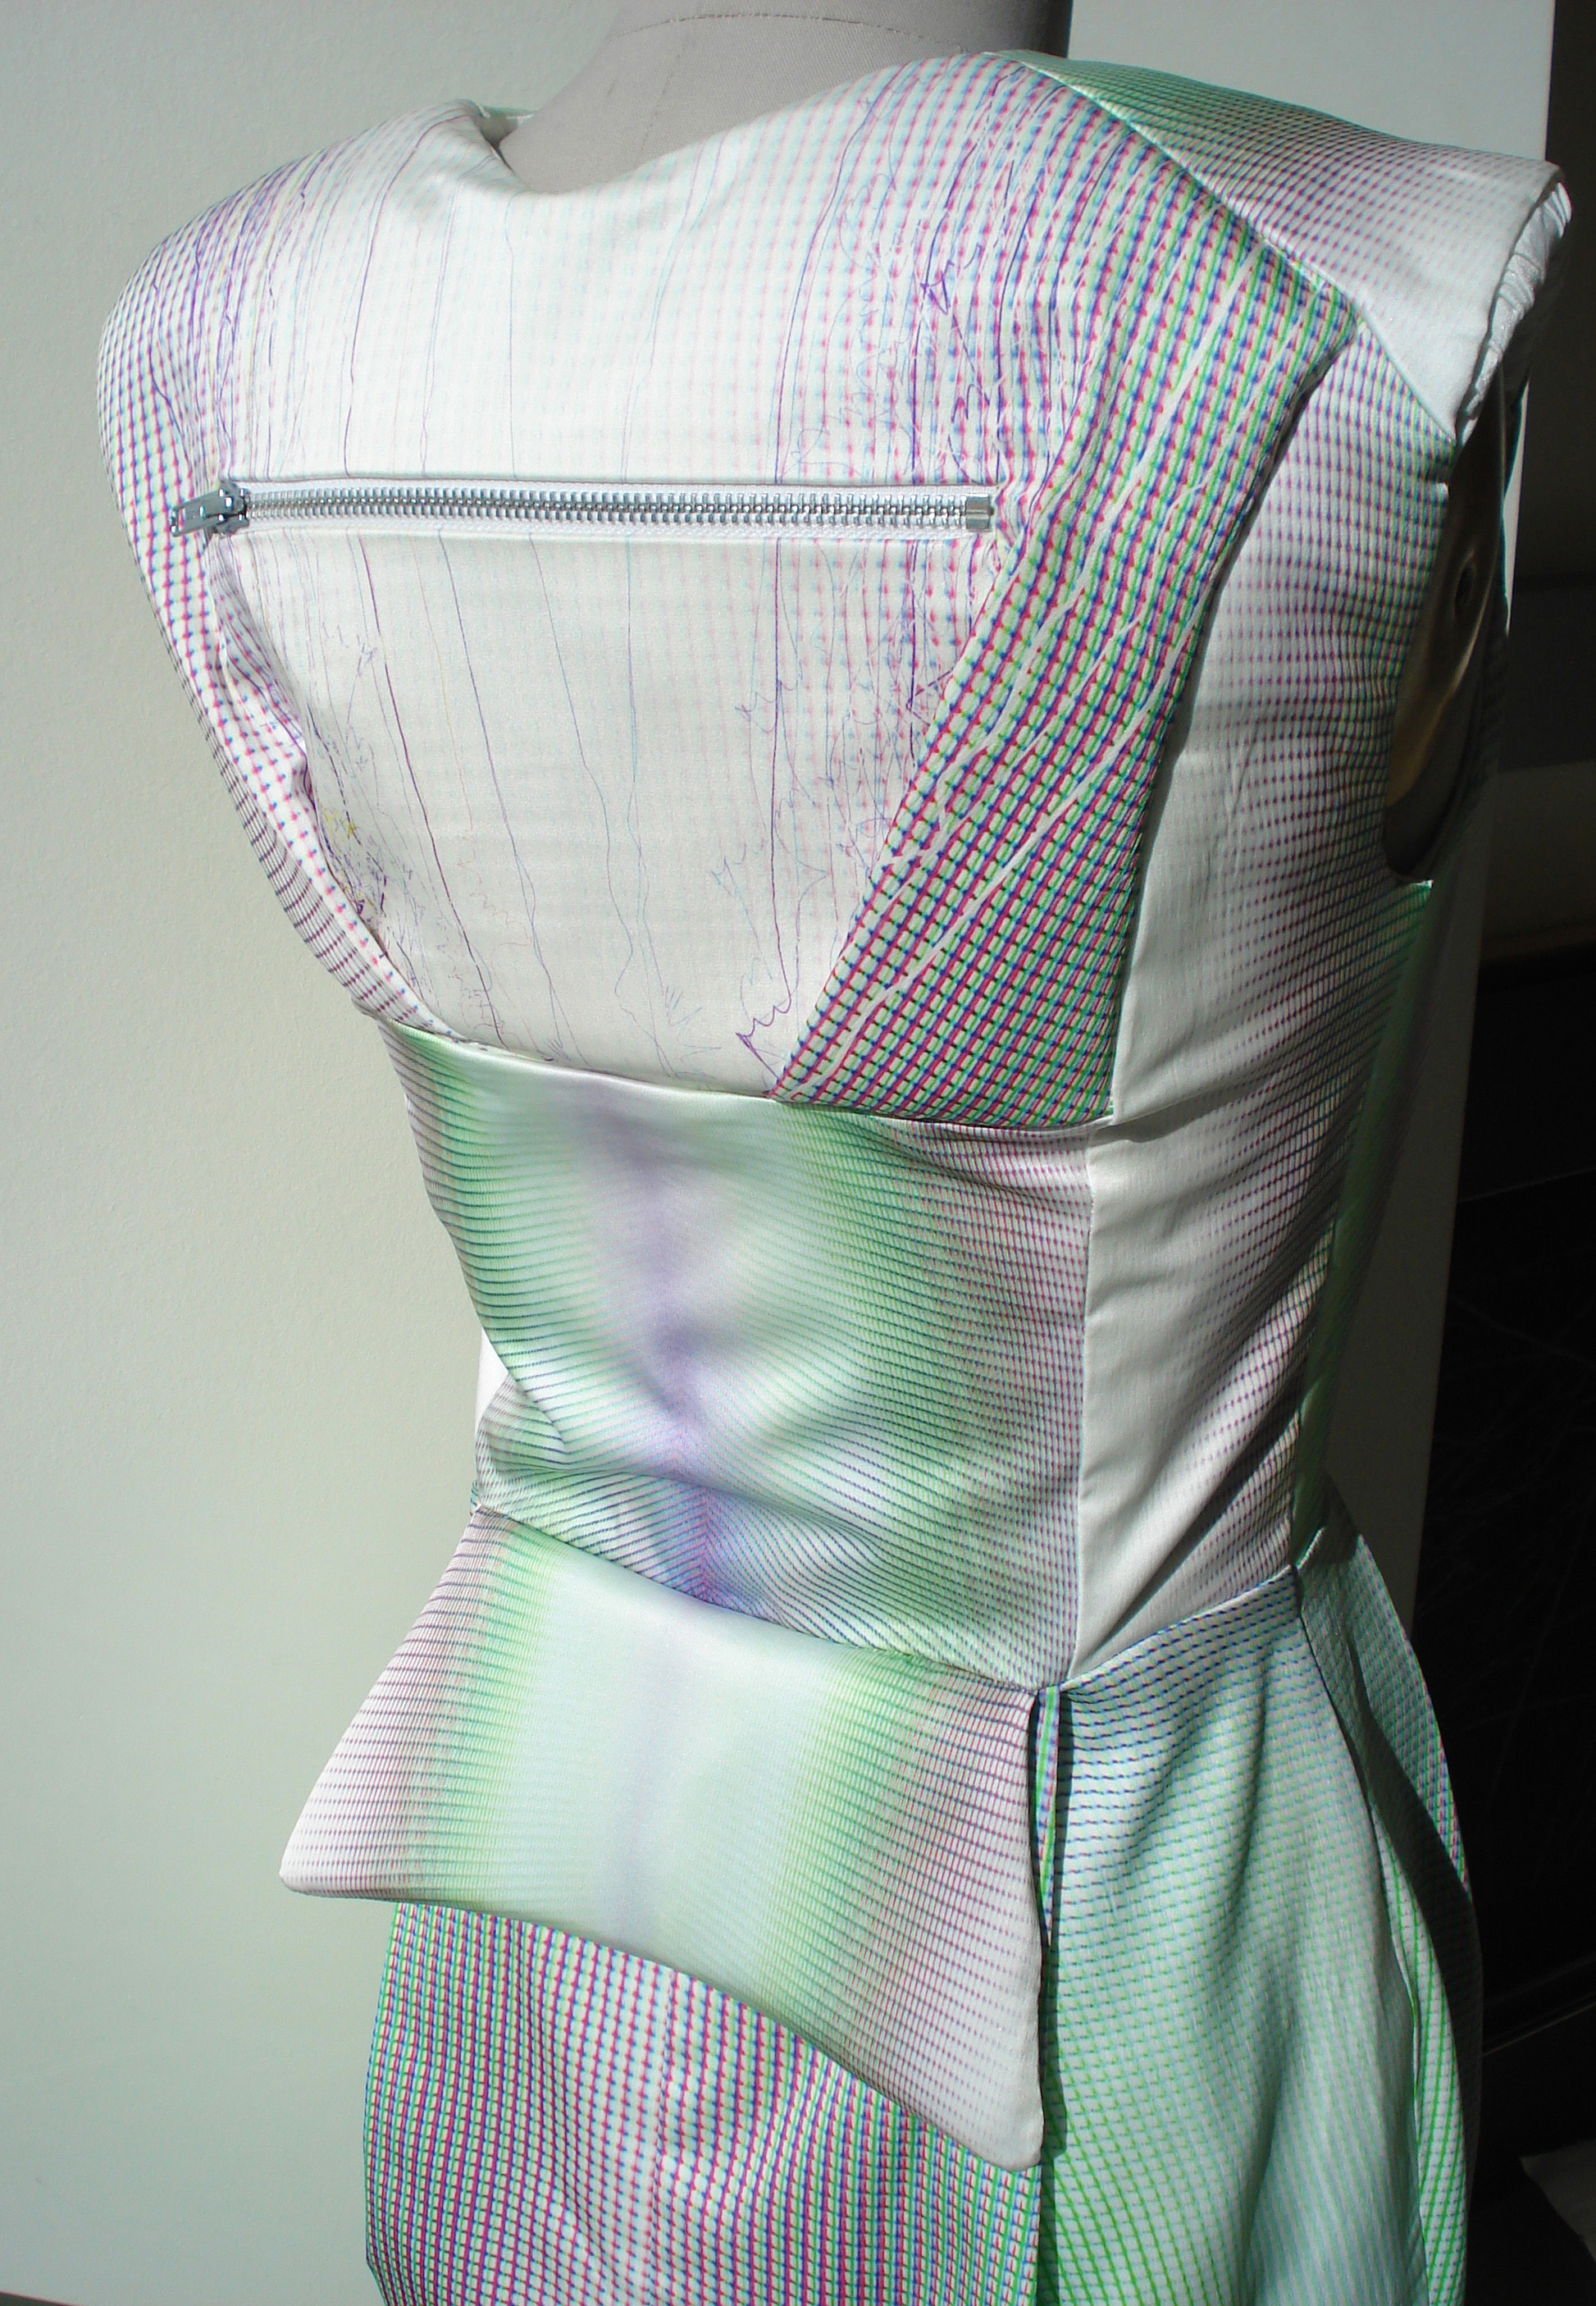 Back dress: Upper back holds electronics in backpack-like pocket. Lower back lumbar cushion is in the down position. When up, the energy builds. When down, the energy is released and a burst of light forms at front of the dress.